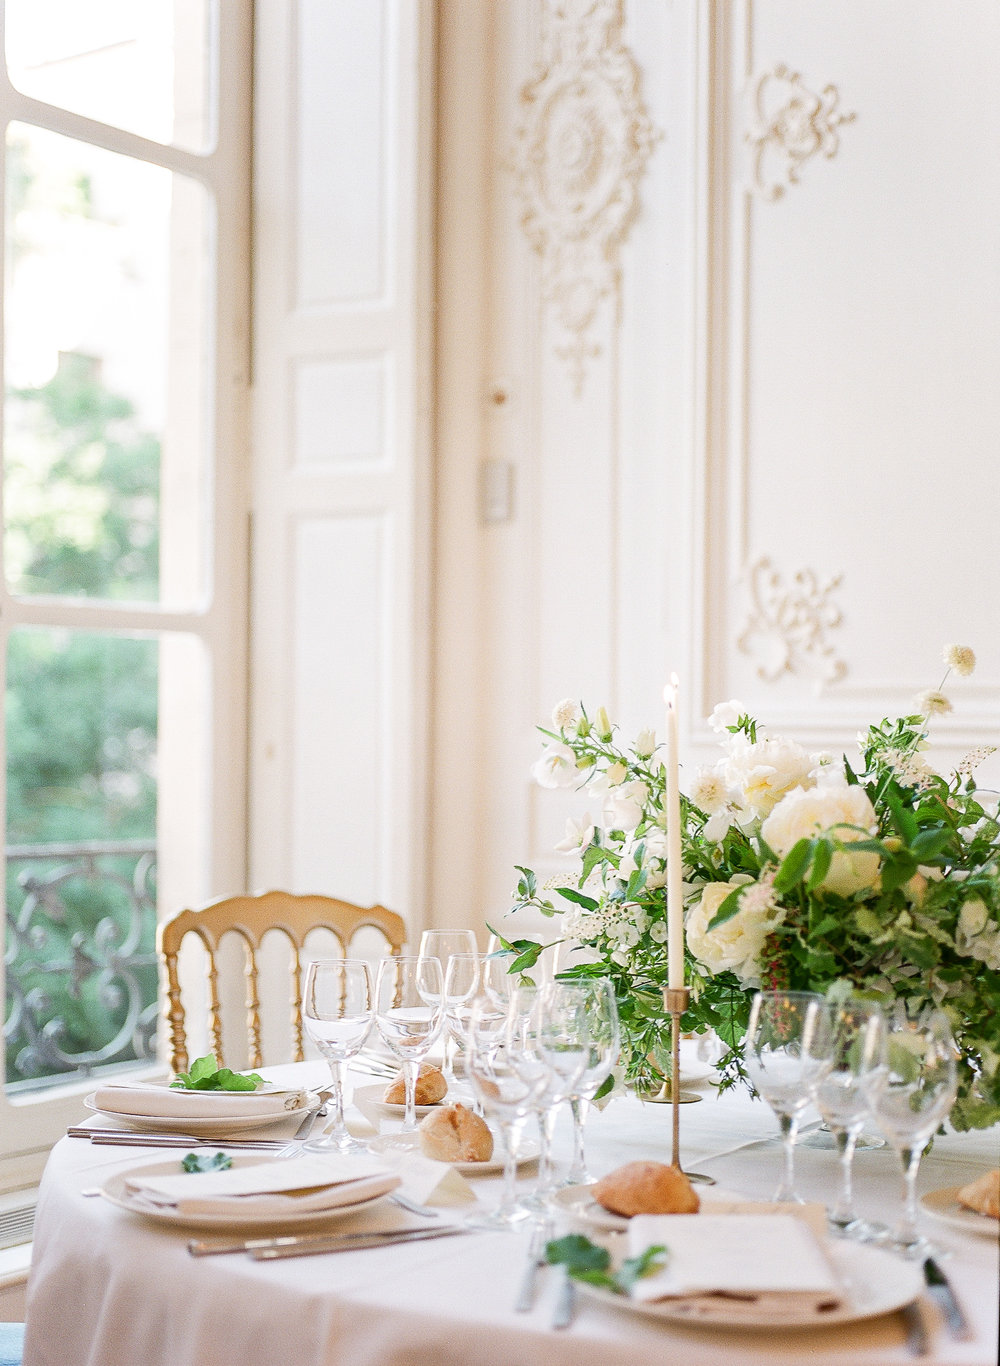 maison-de-polytechniciens-wedding-florist-paris-france.jpg